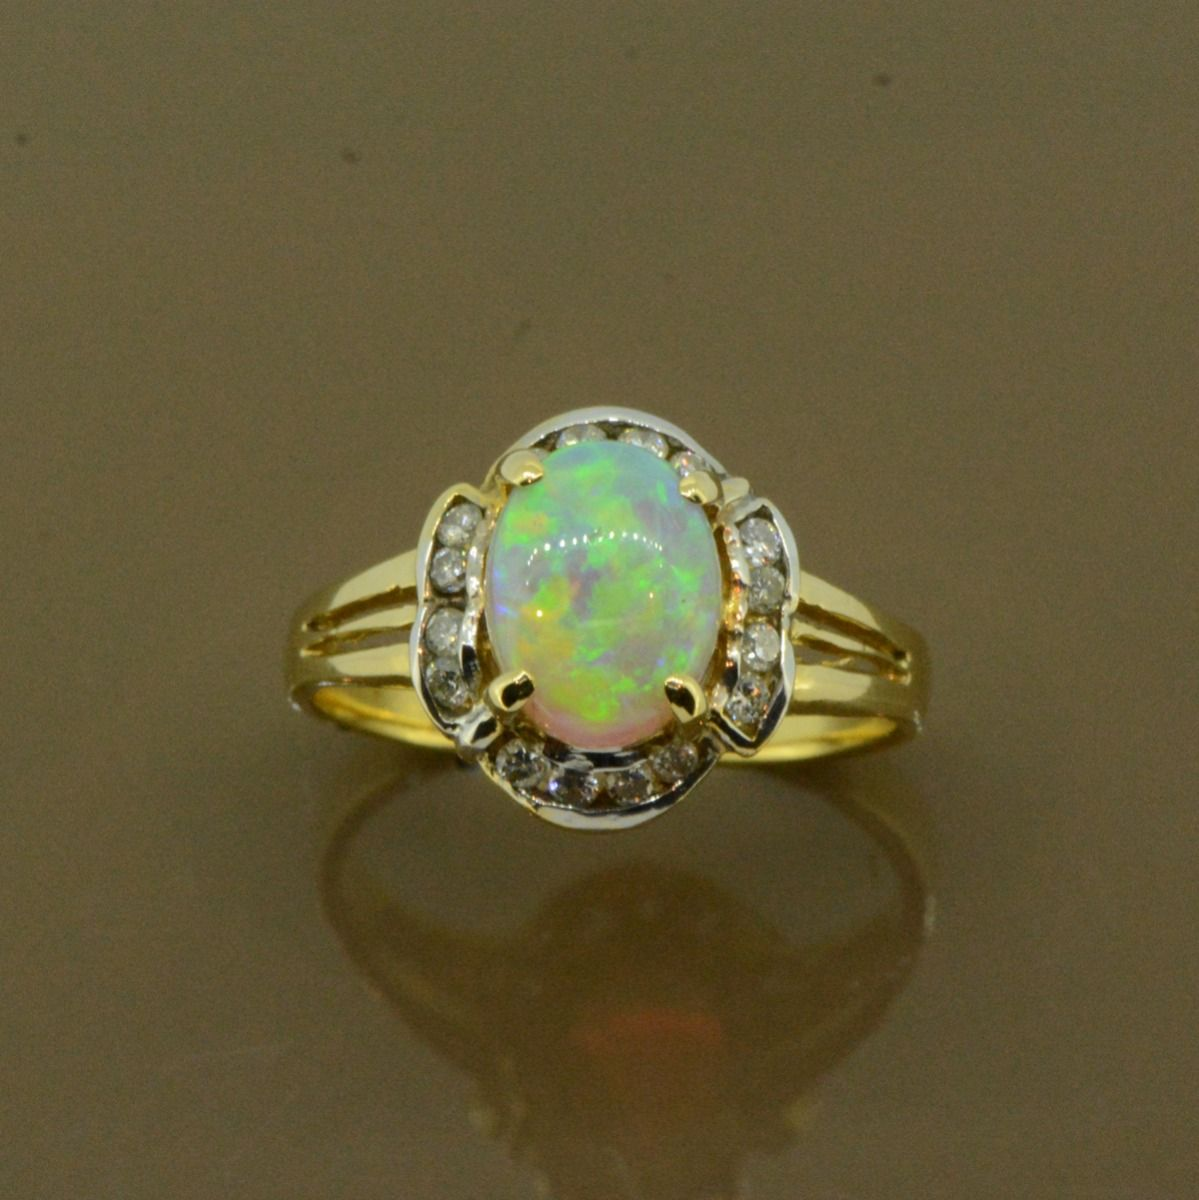 18ct Yellow Gold Solid Crystal Opal Ring set with Brilliant cut Diamonds